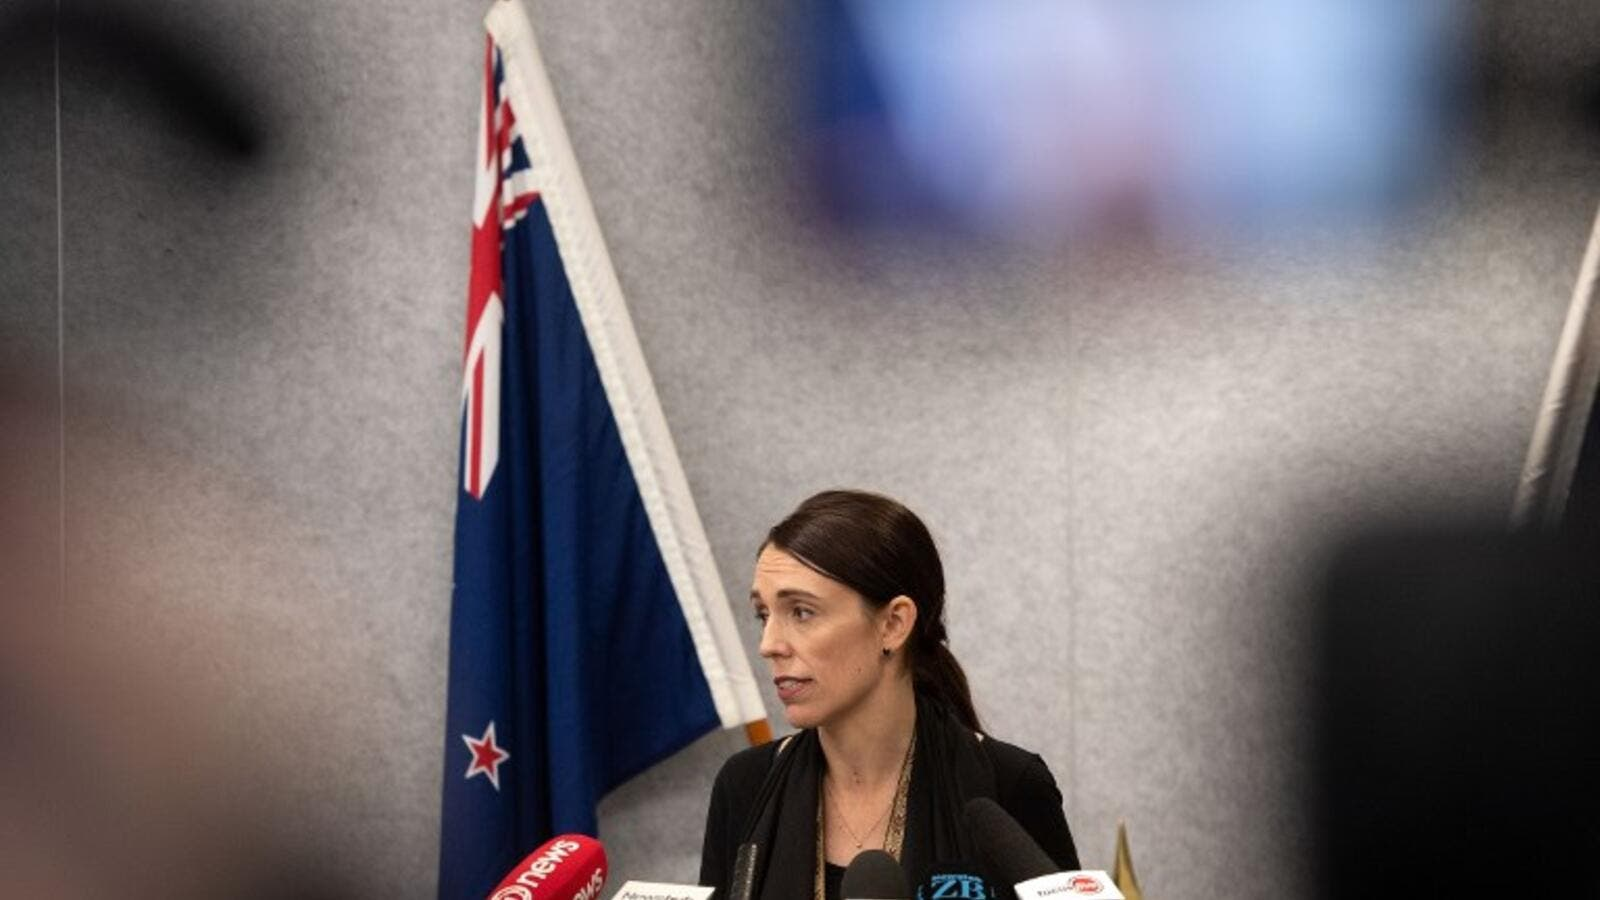 New Zealand Prime Minister Jacinda Ardern speaks to the media during a press conference at the Justice Precinct in Christchurch on March 16, 2019. (AFP/ File)